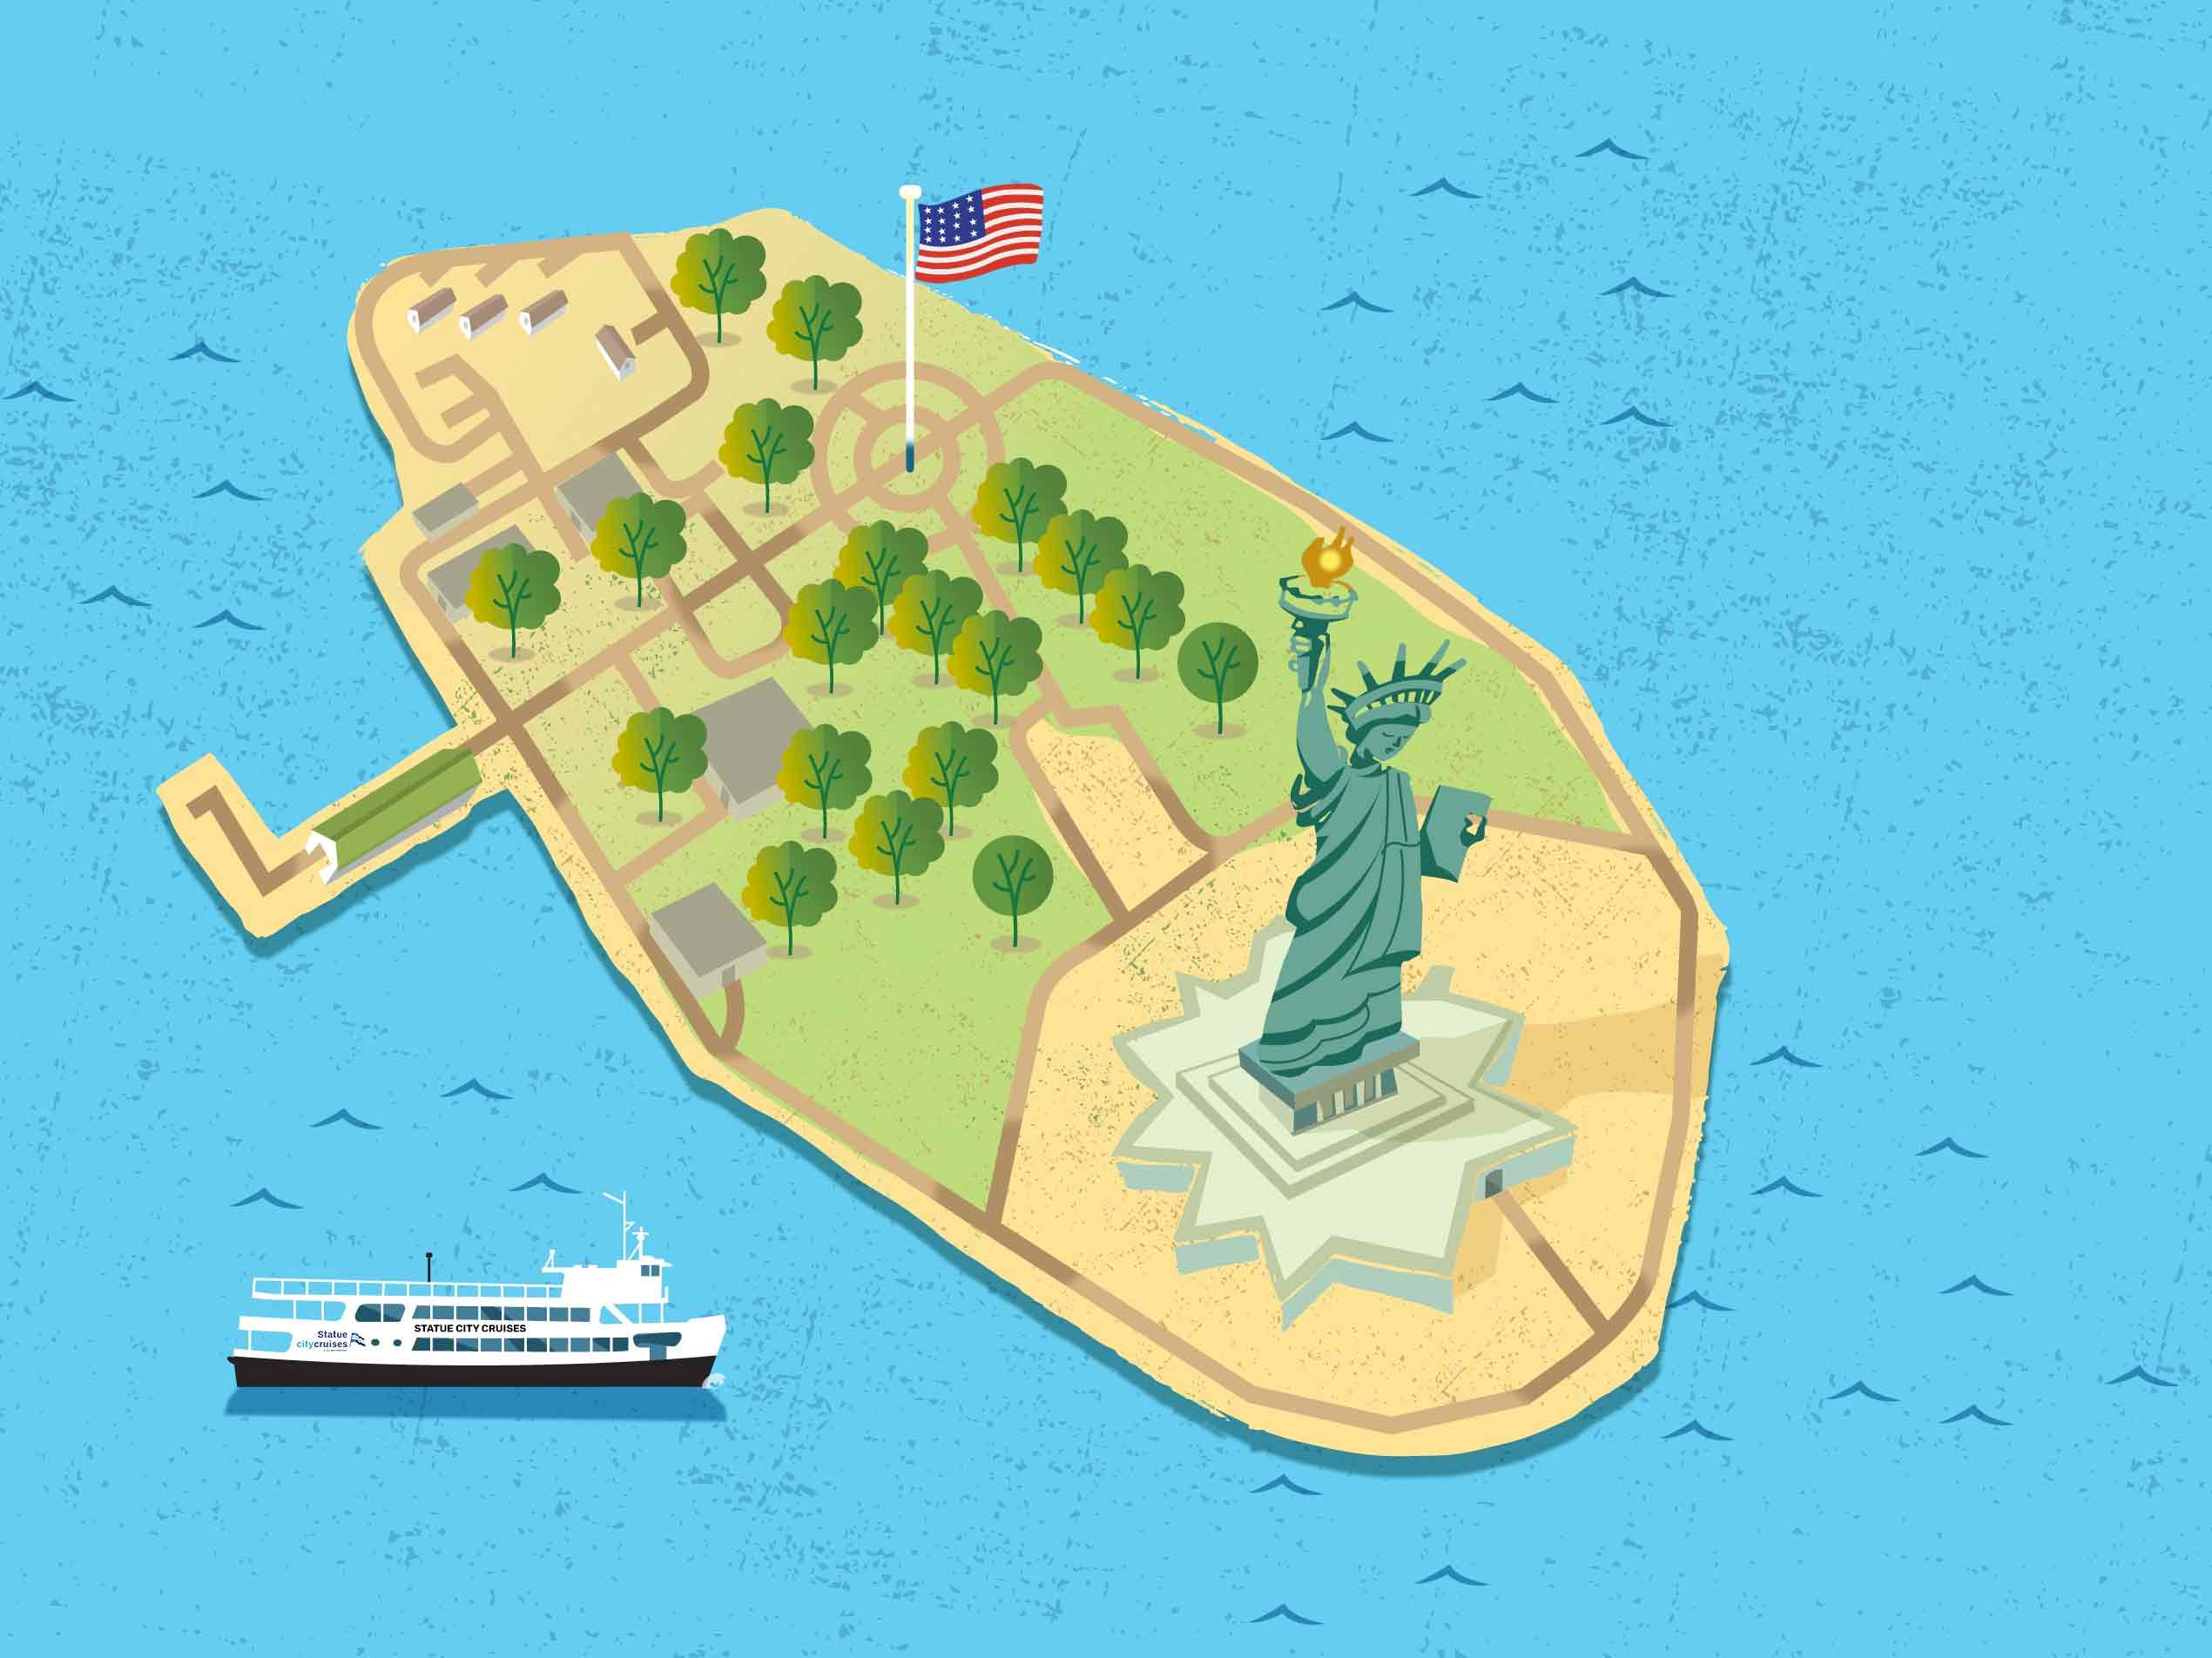 An illustration of Liberty Island with boat and American Flag